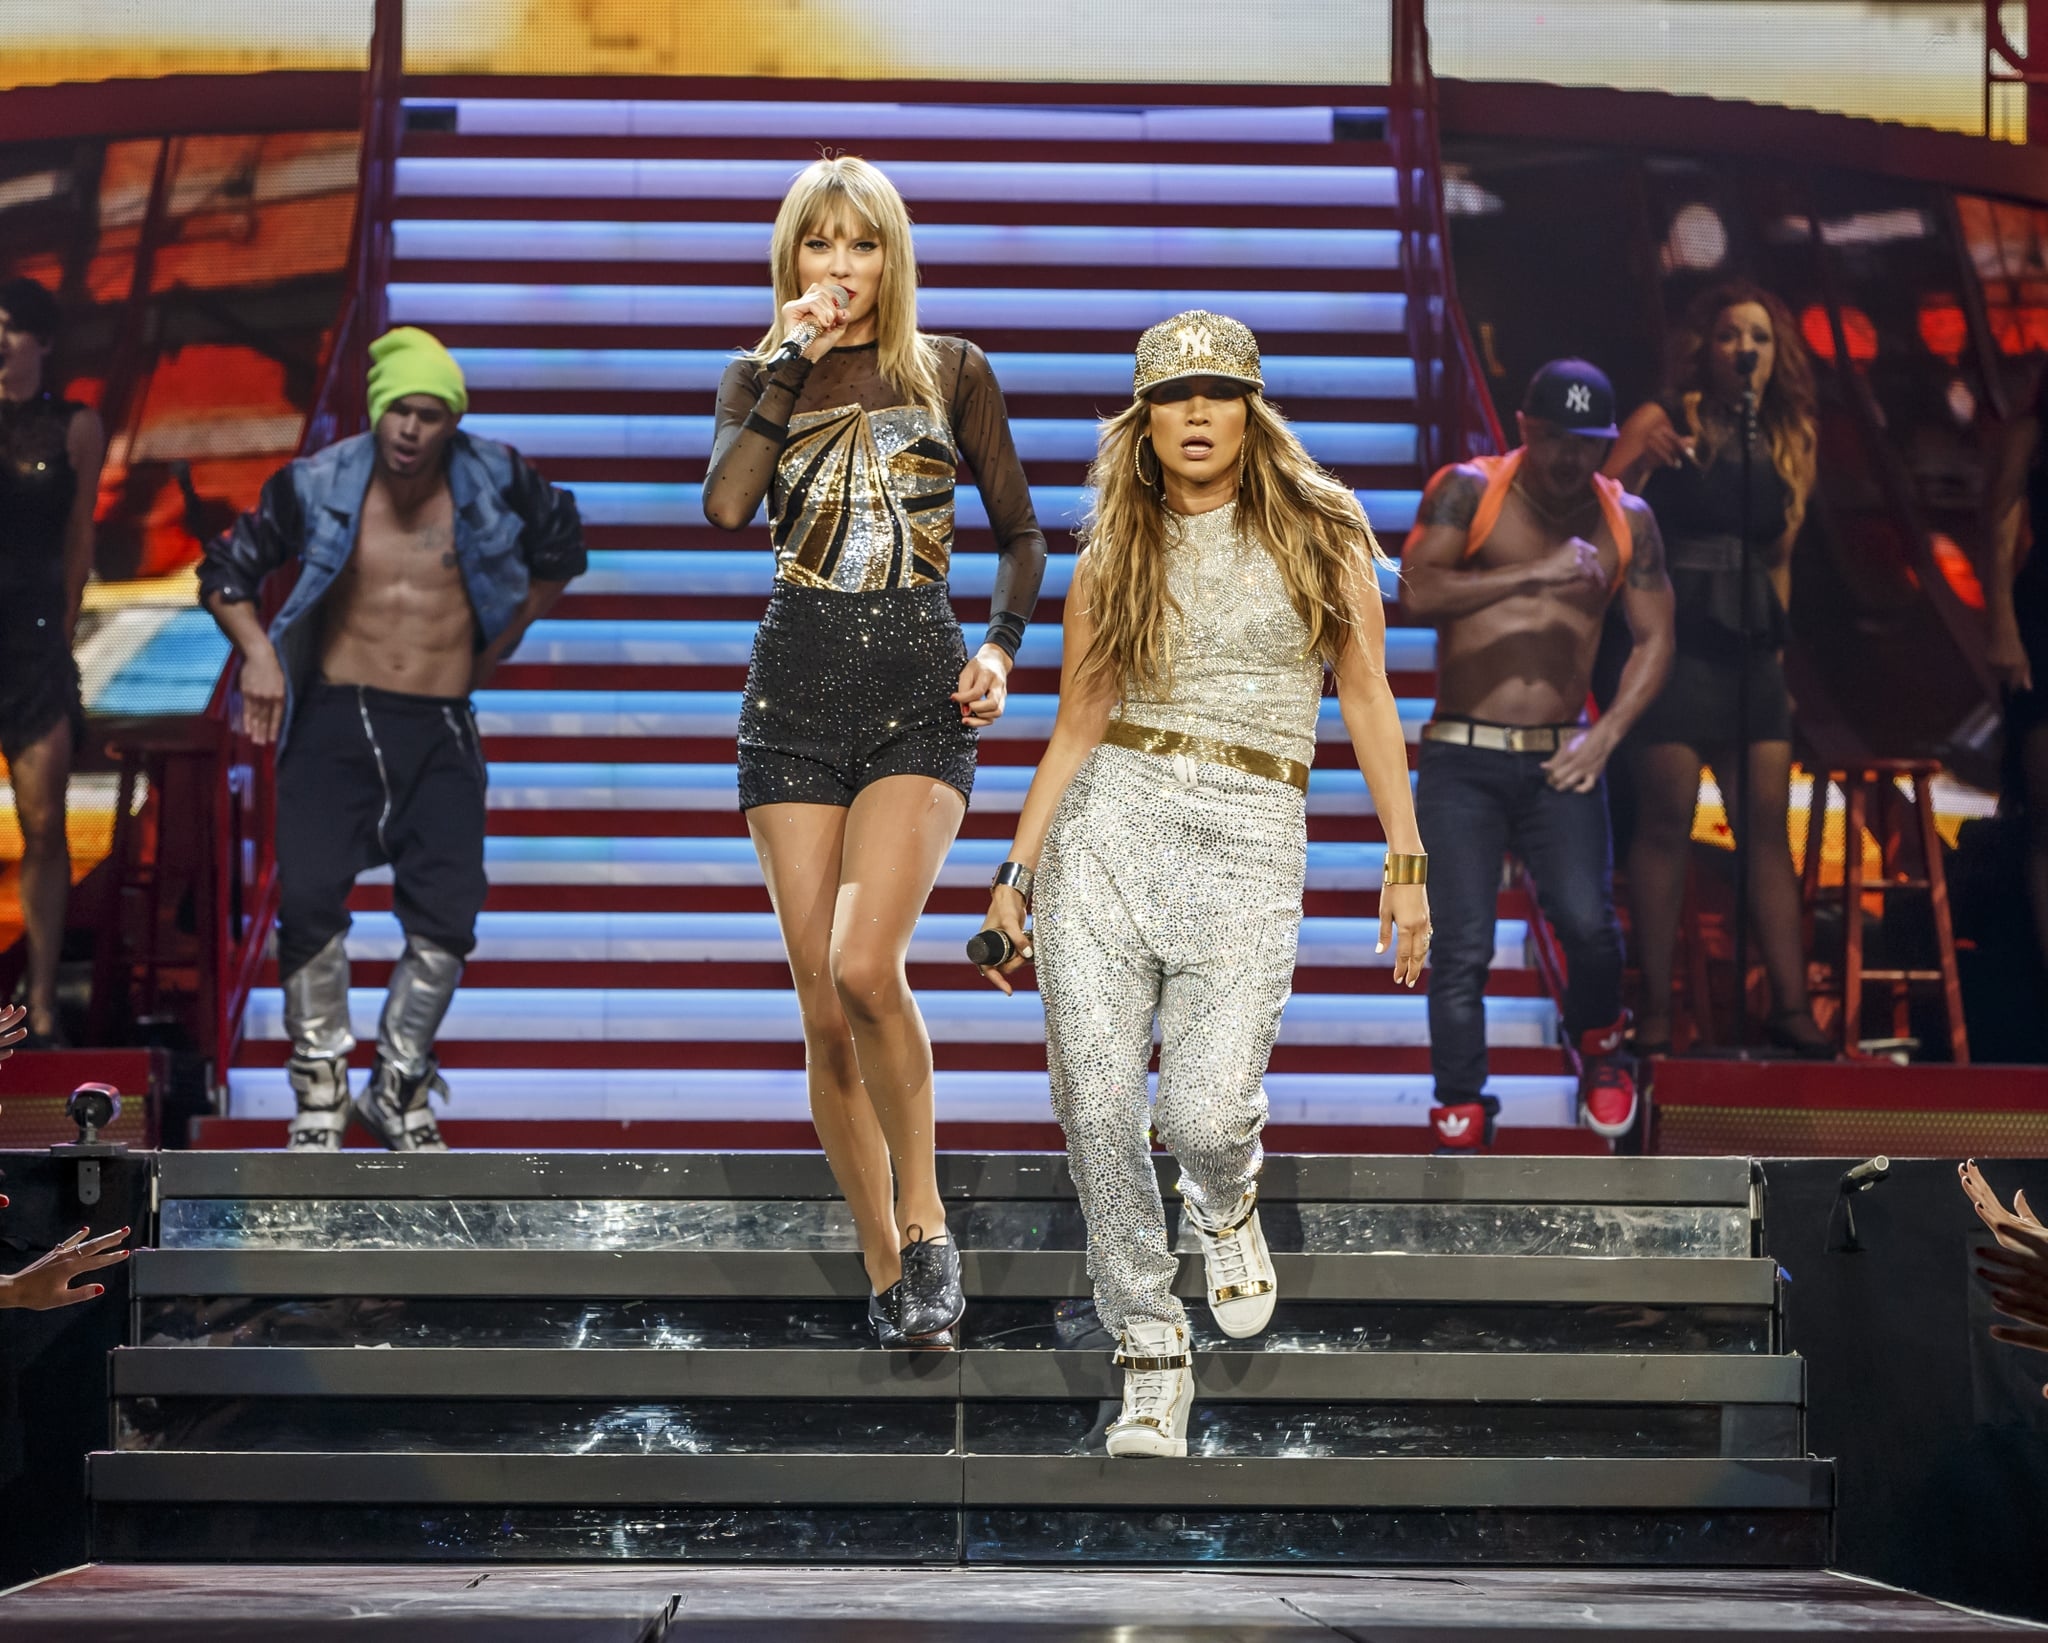 Taylor Swift and Jennifer Lopez performed together at the Staples Center in LA during the last of Taylor's four-night run in the city.